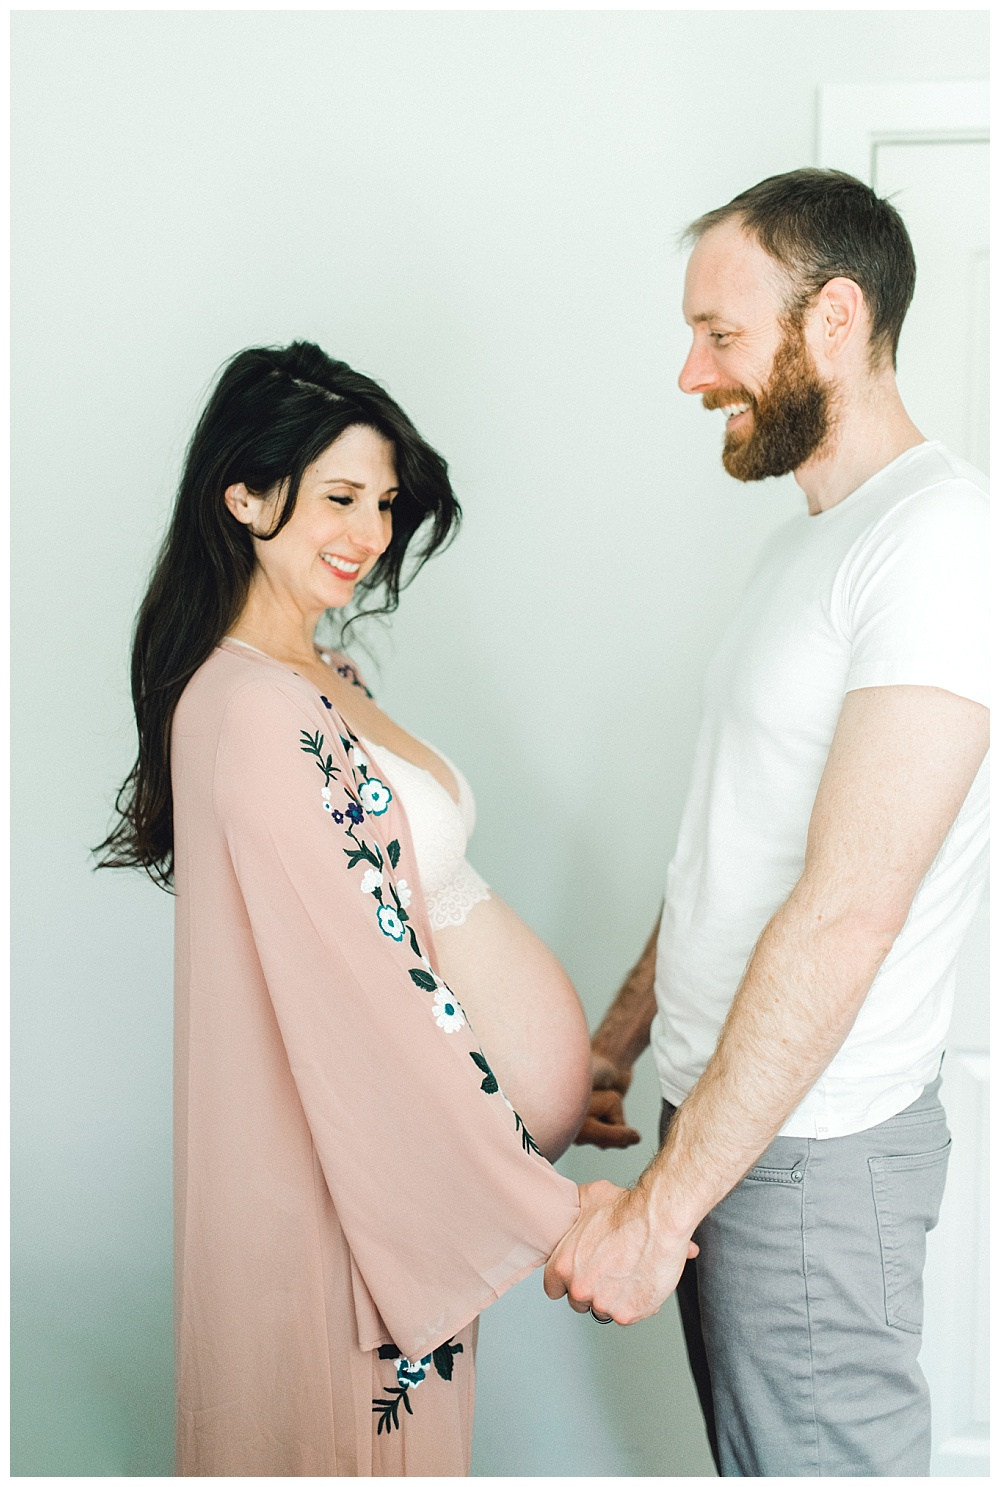 in-home maternity boudoir session, husband holding hands with pregnant wife, Beaverton, OR